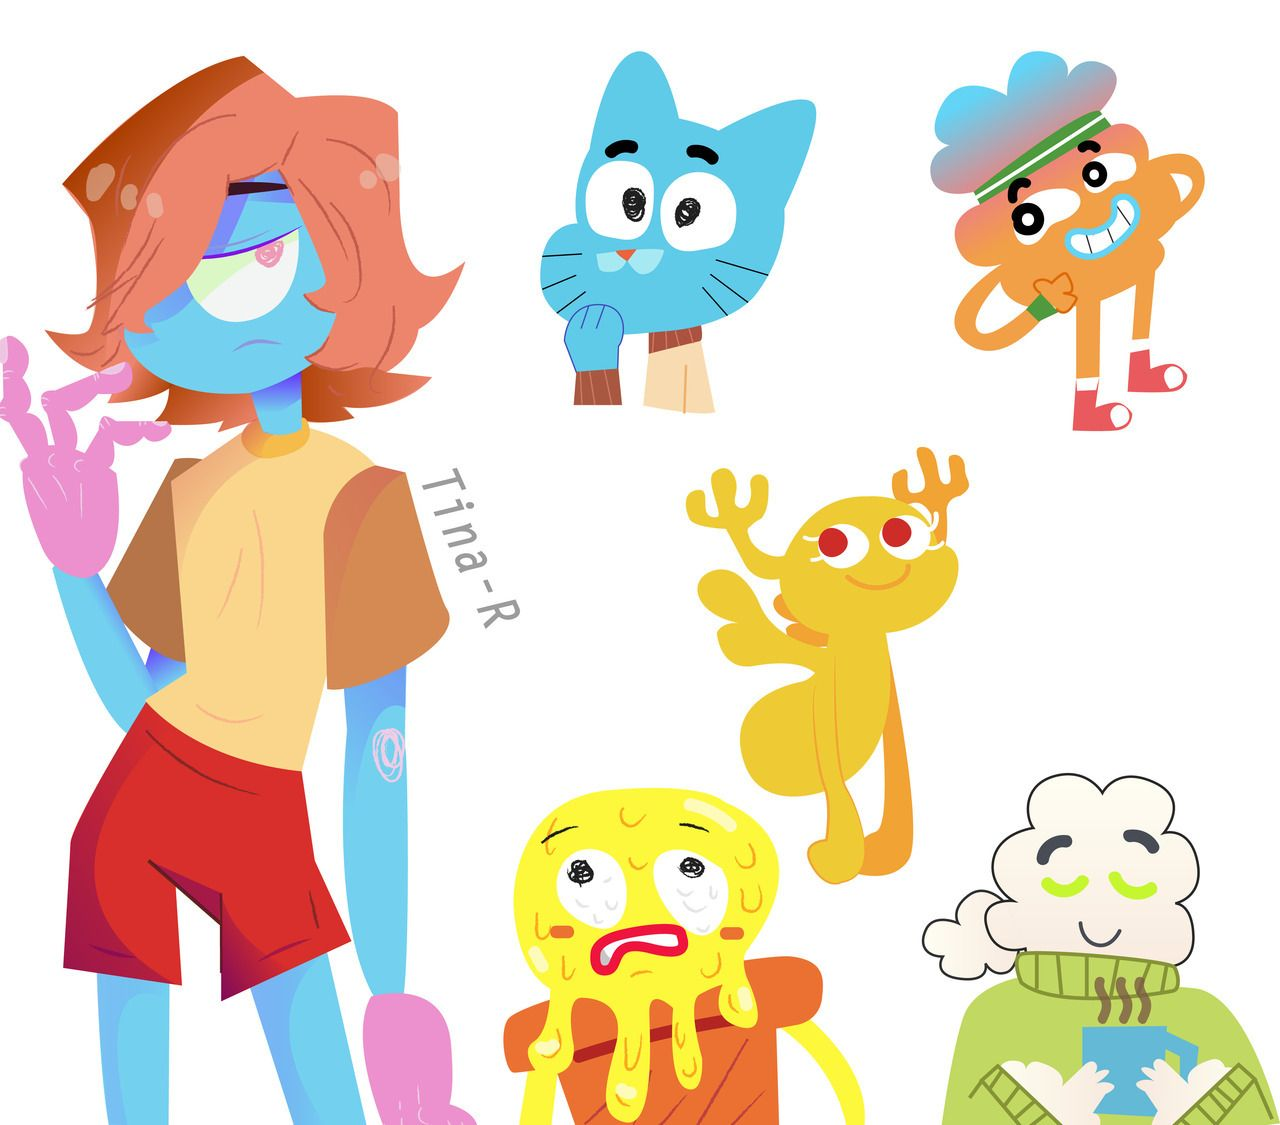 Pin By Dumb Blue Husky On Screenshots The Amazing World Of Gumball World Of Gumball Gumball